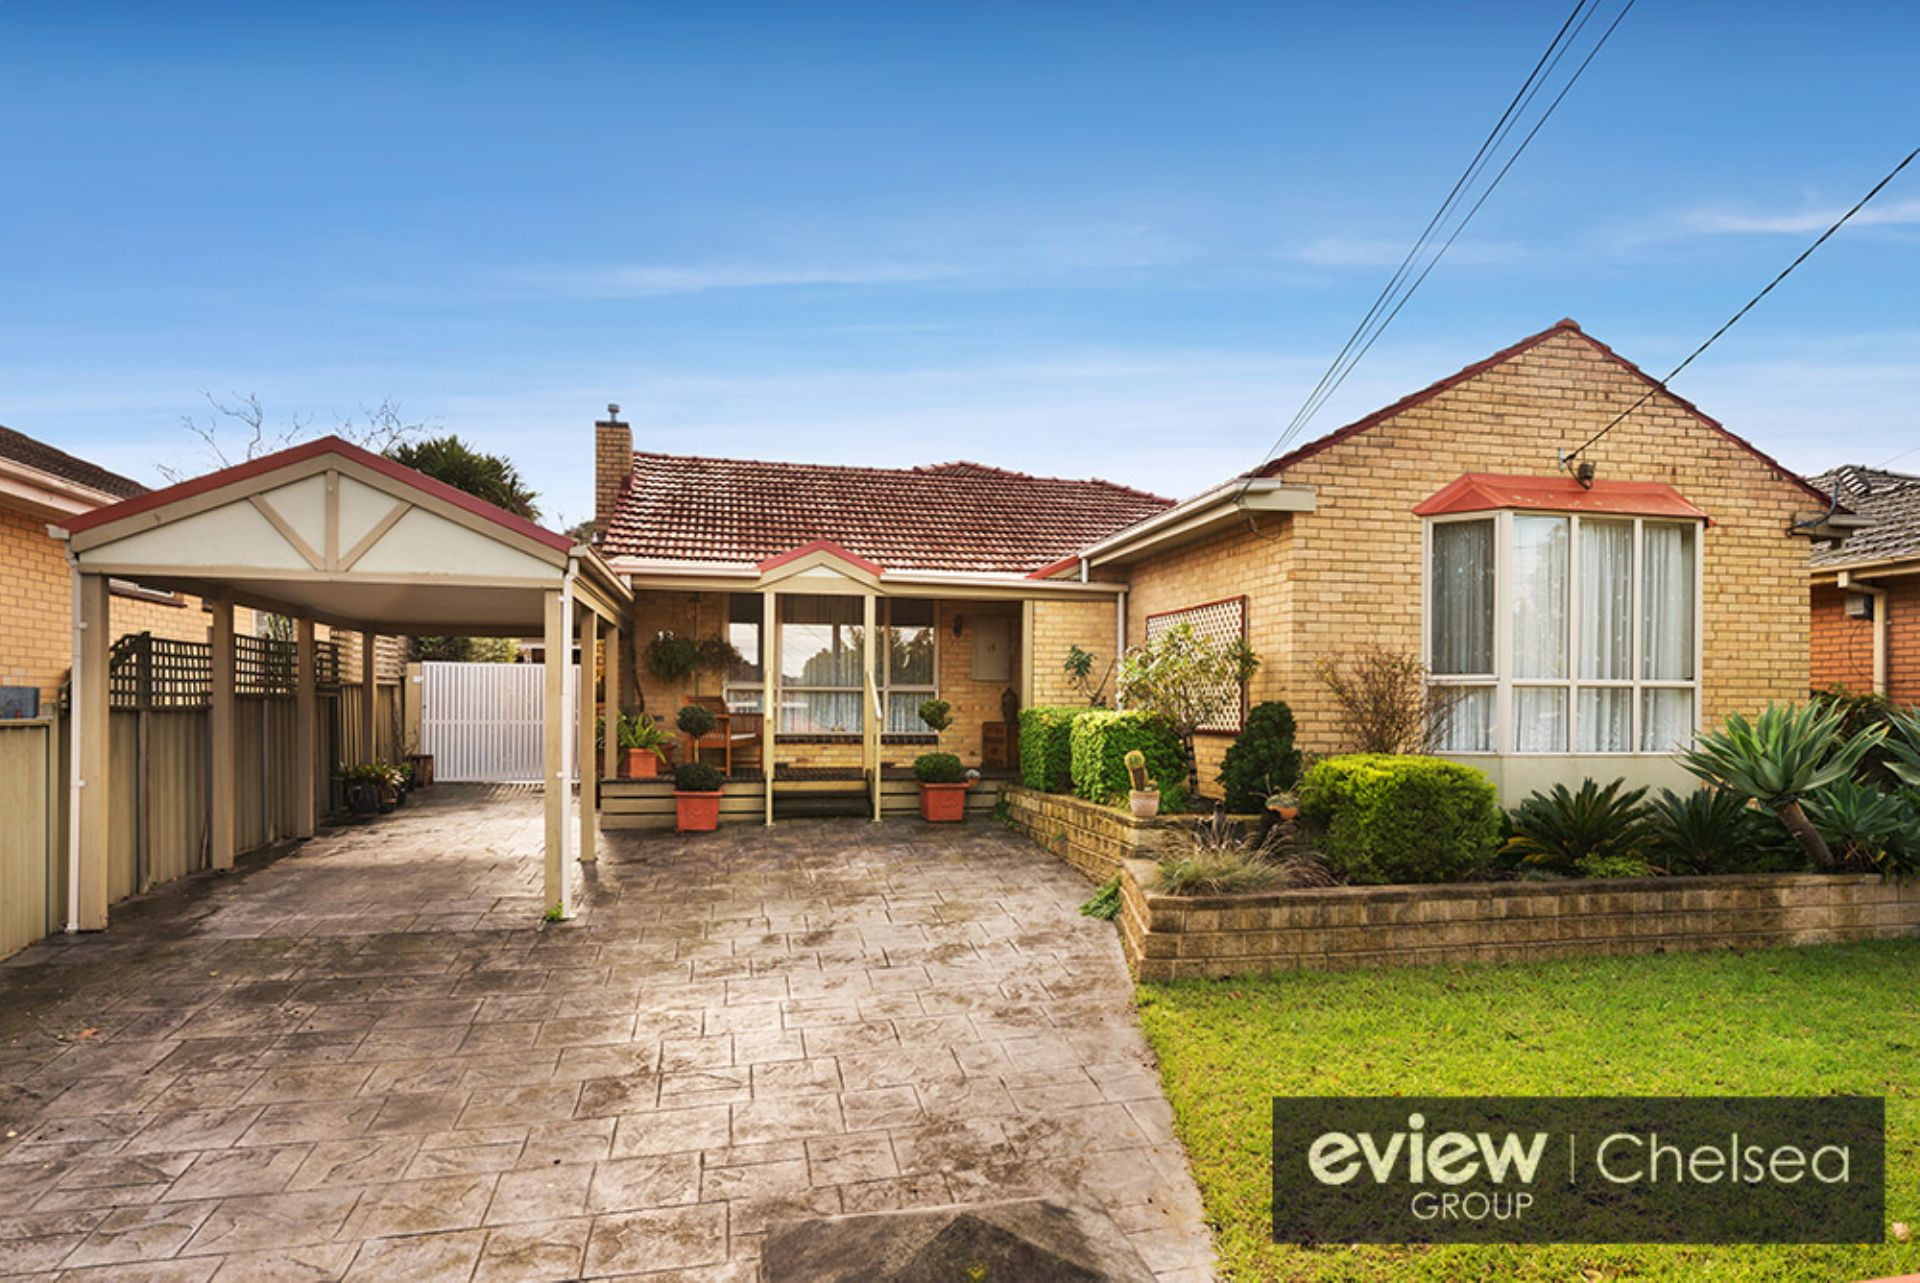 13 Glenthorne Drive, KEYSBOROUGH, VIC, 3173 - Image